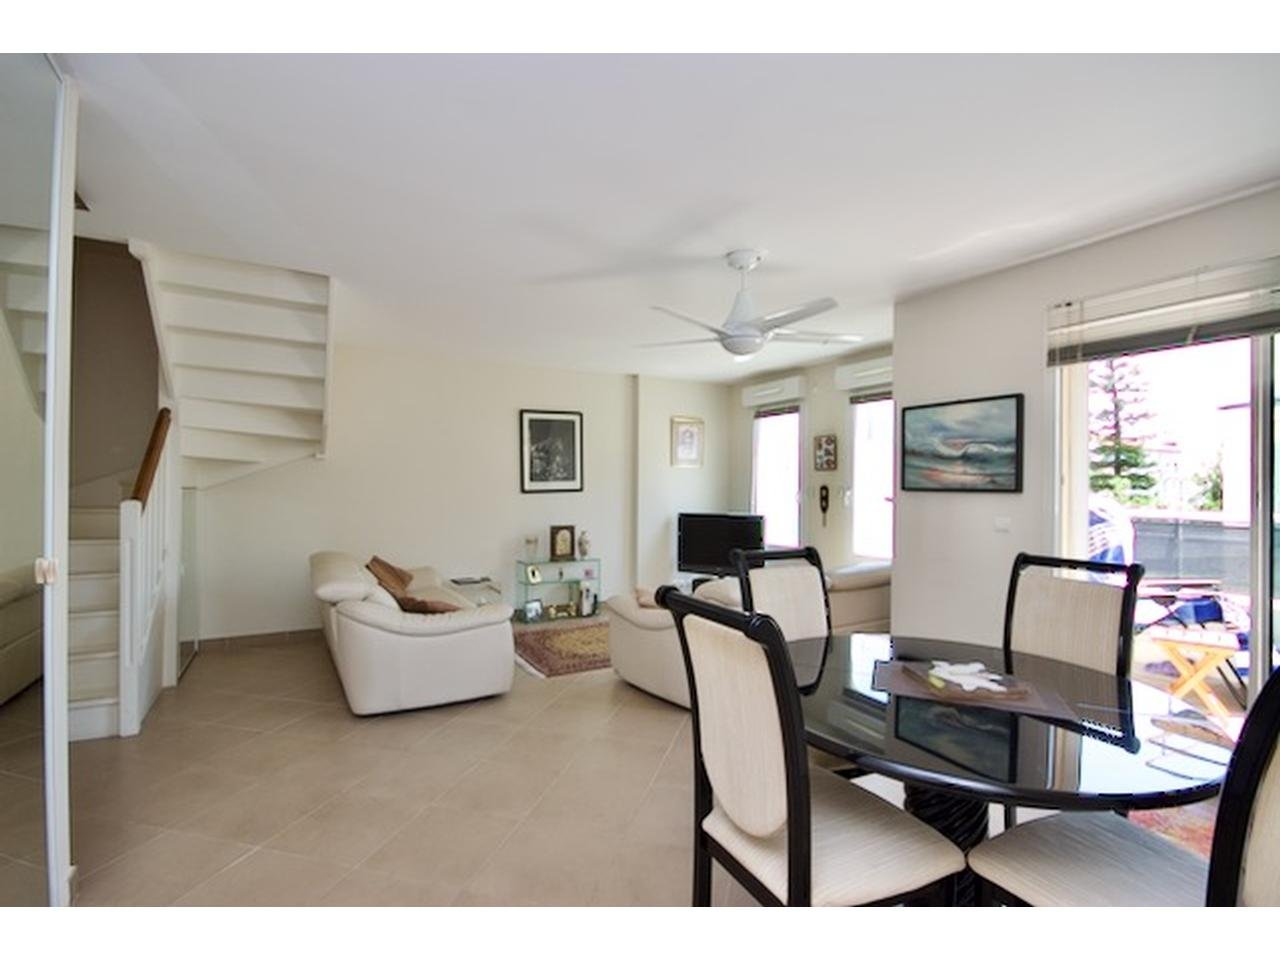 Appartement  3 Rooms 86.4m2  for sale   640000 €